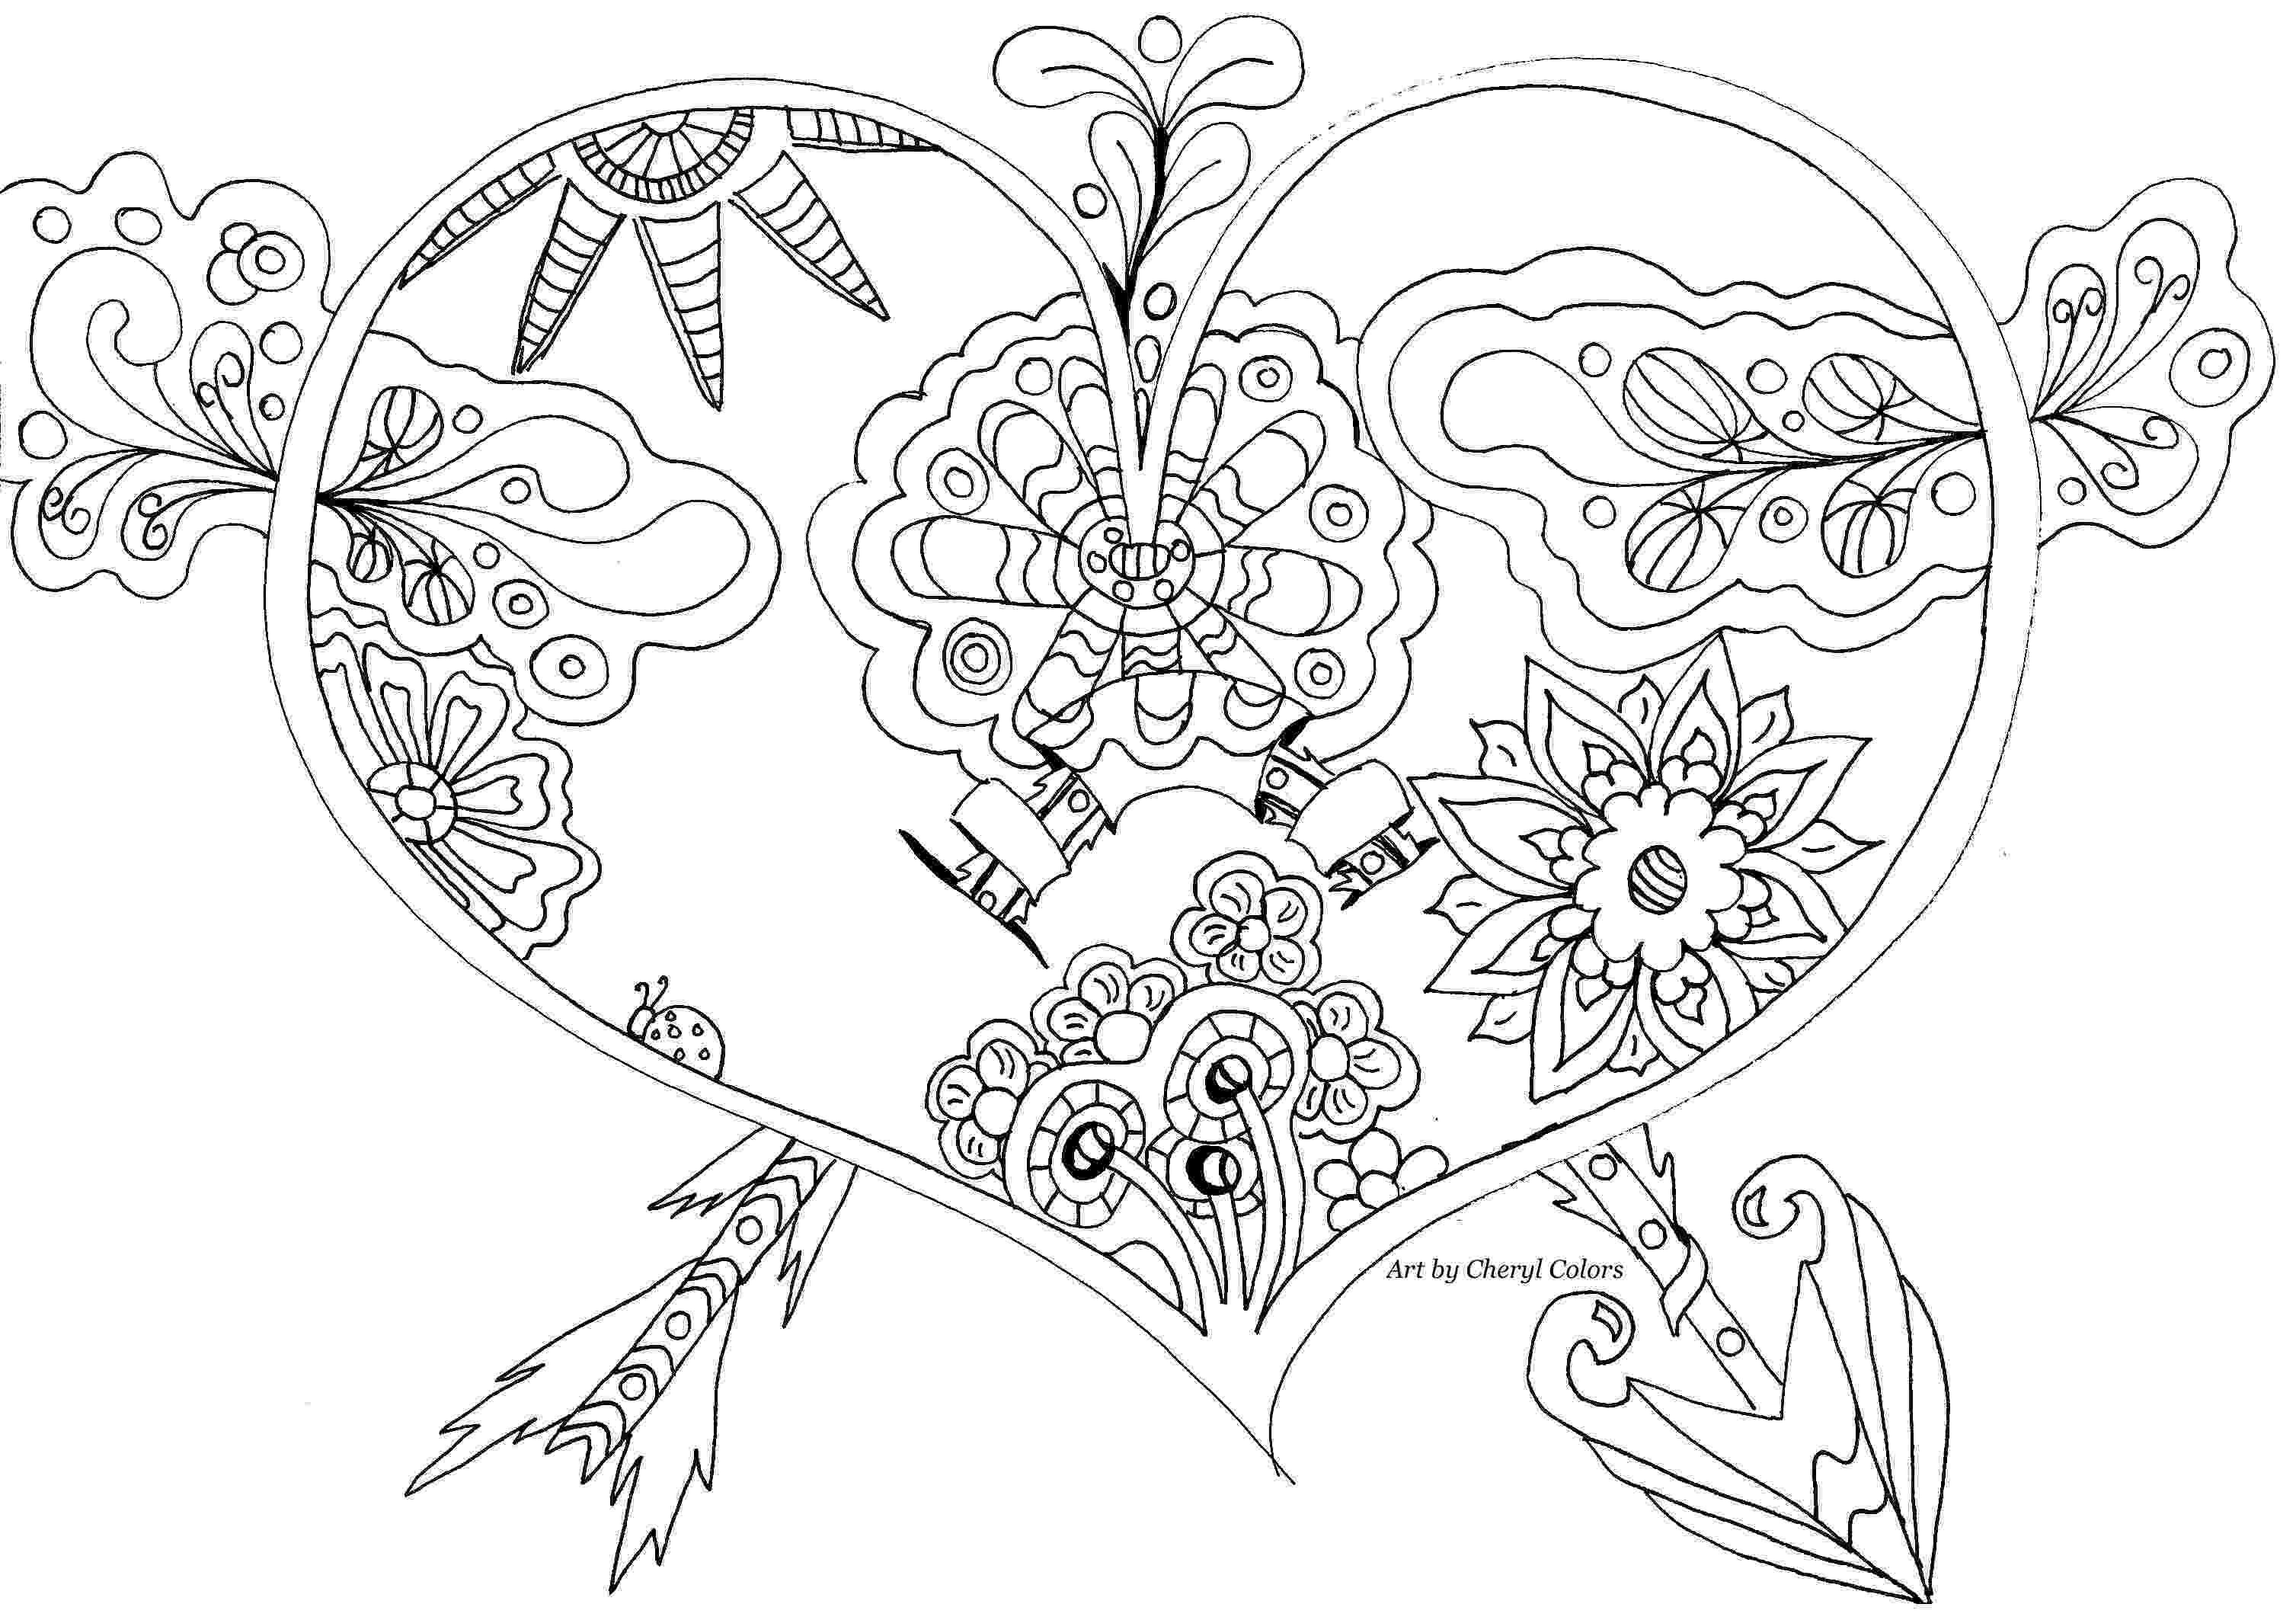 coloring pages online for adults 118 best images about adult coloring pages on pinterest adults online coloring for pages